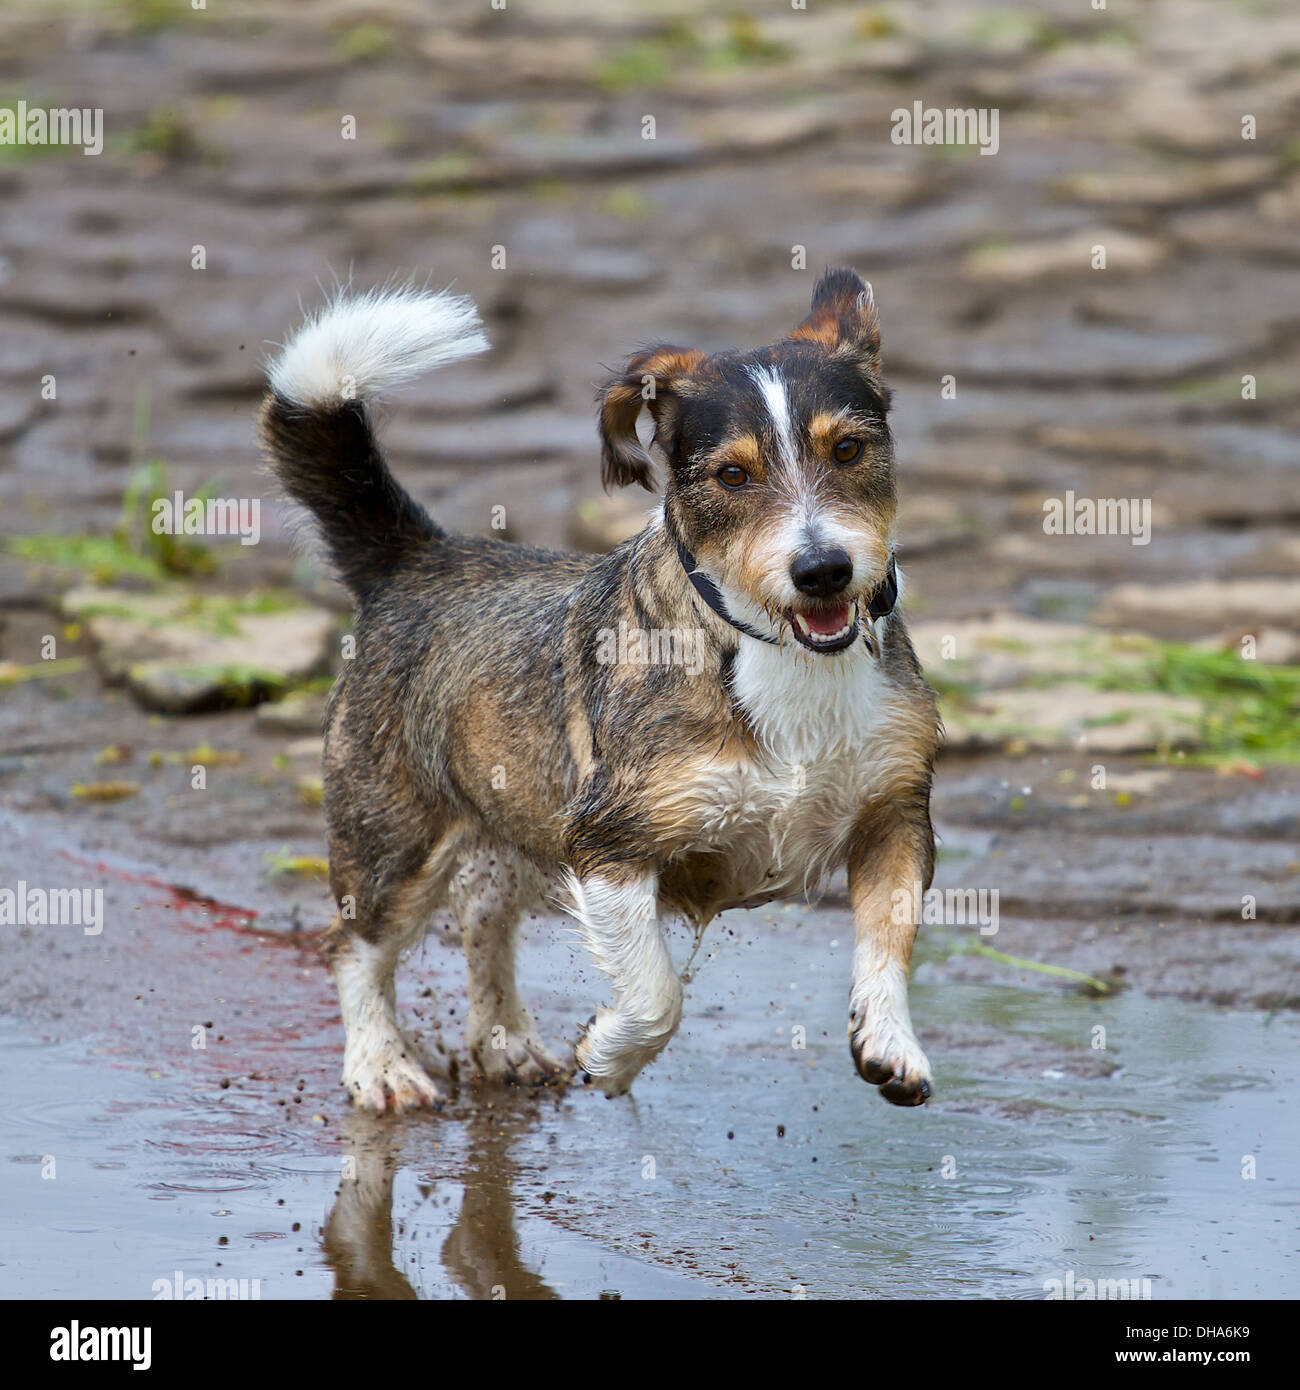 A mixed breed dog jumps very dynamic and enjoyable through a puddle of water - Stock Image